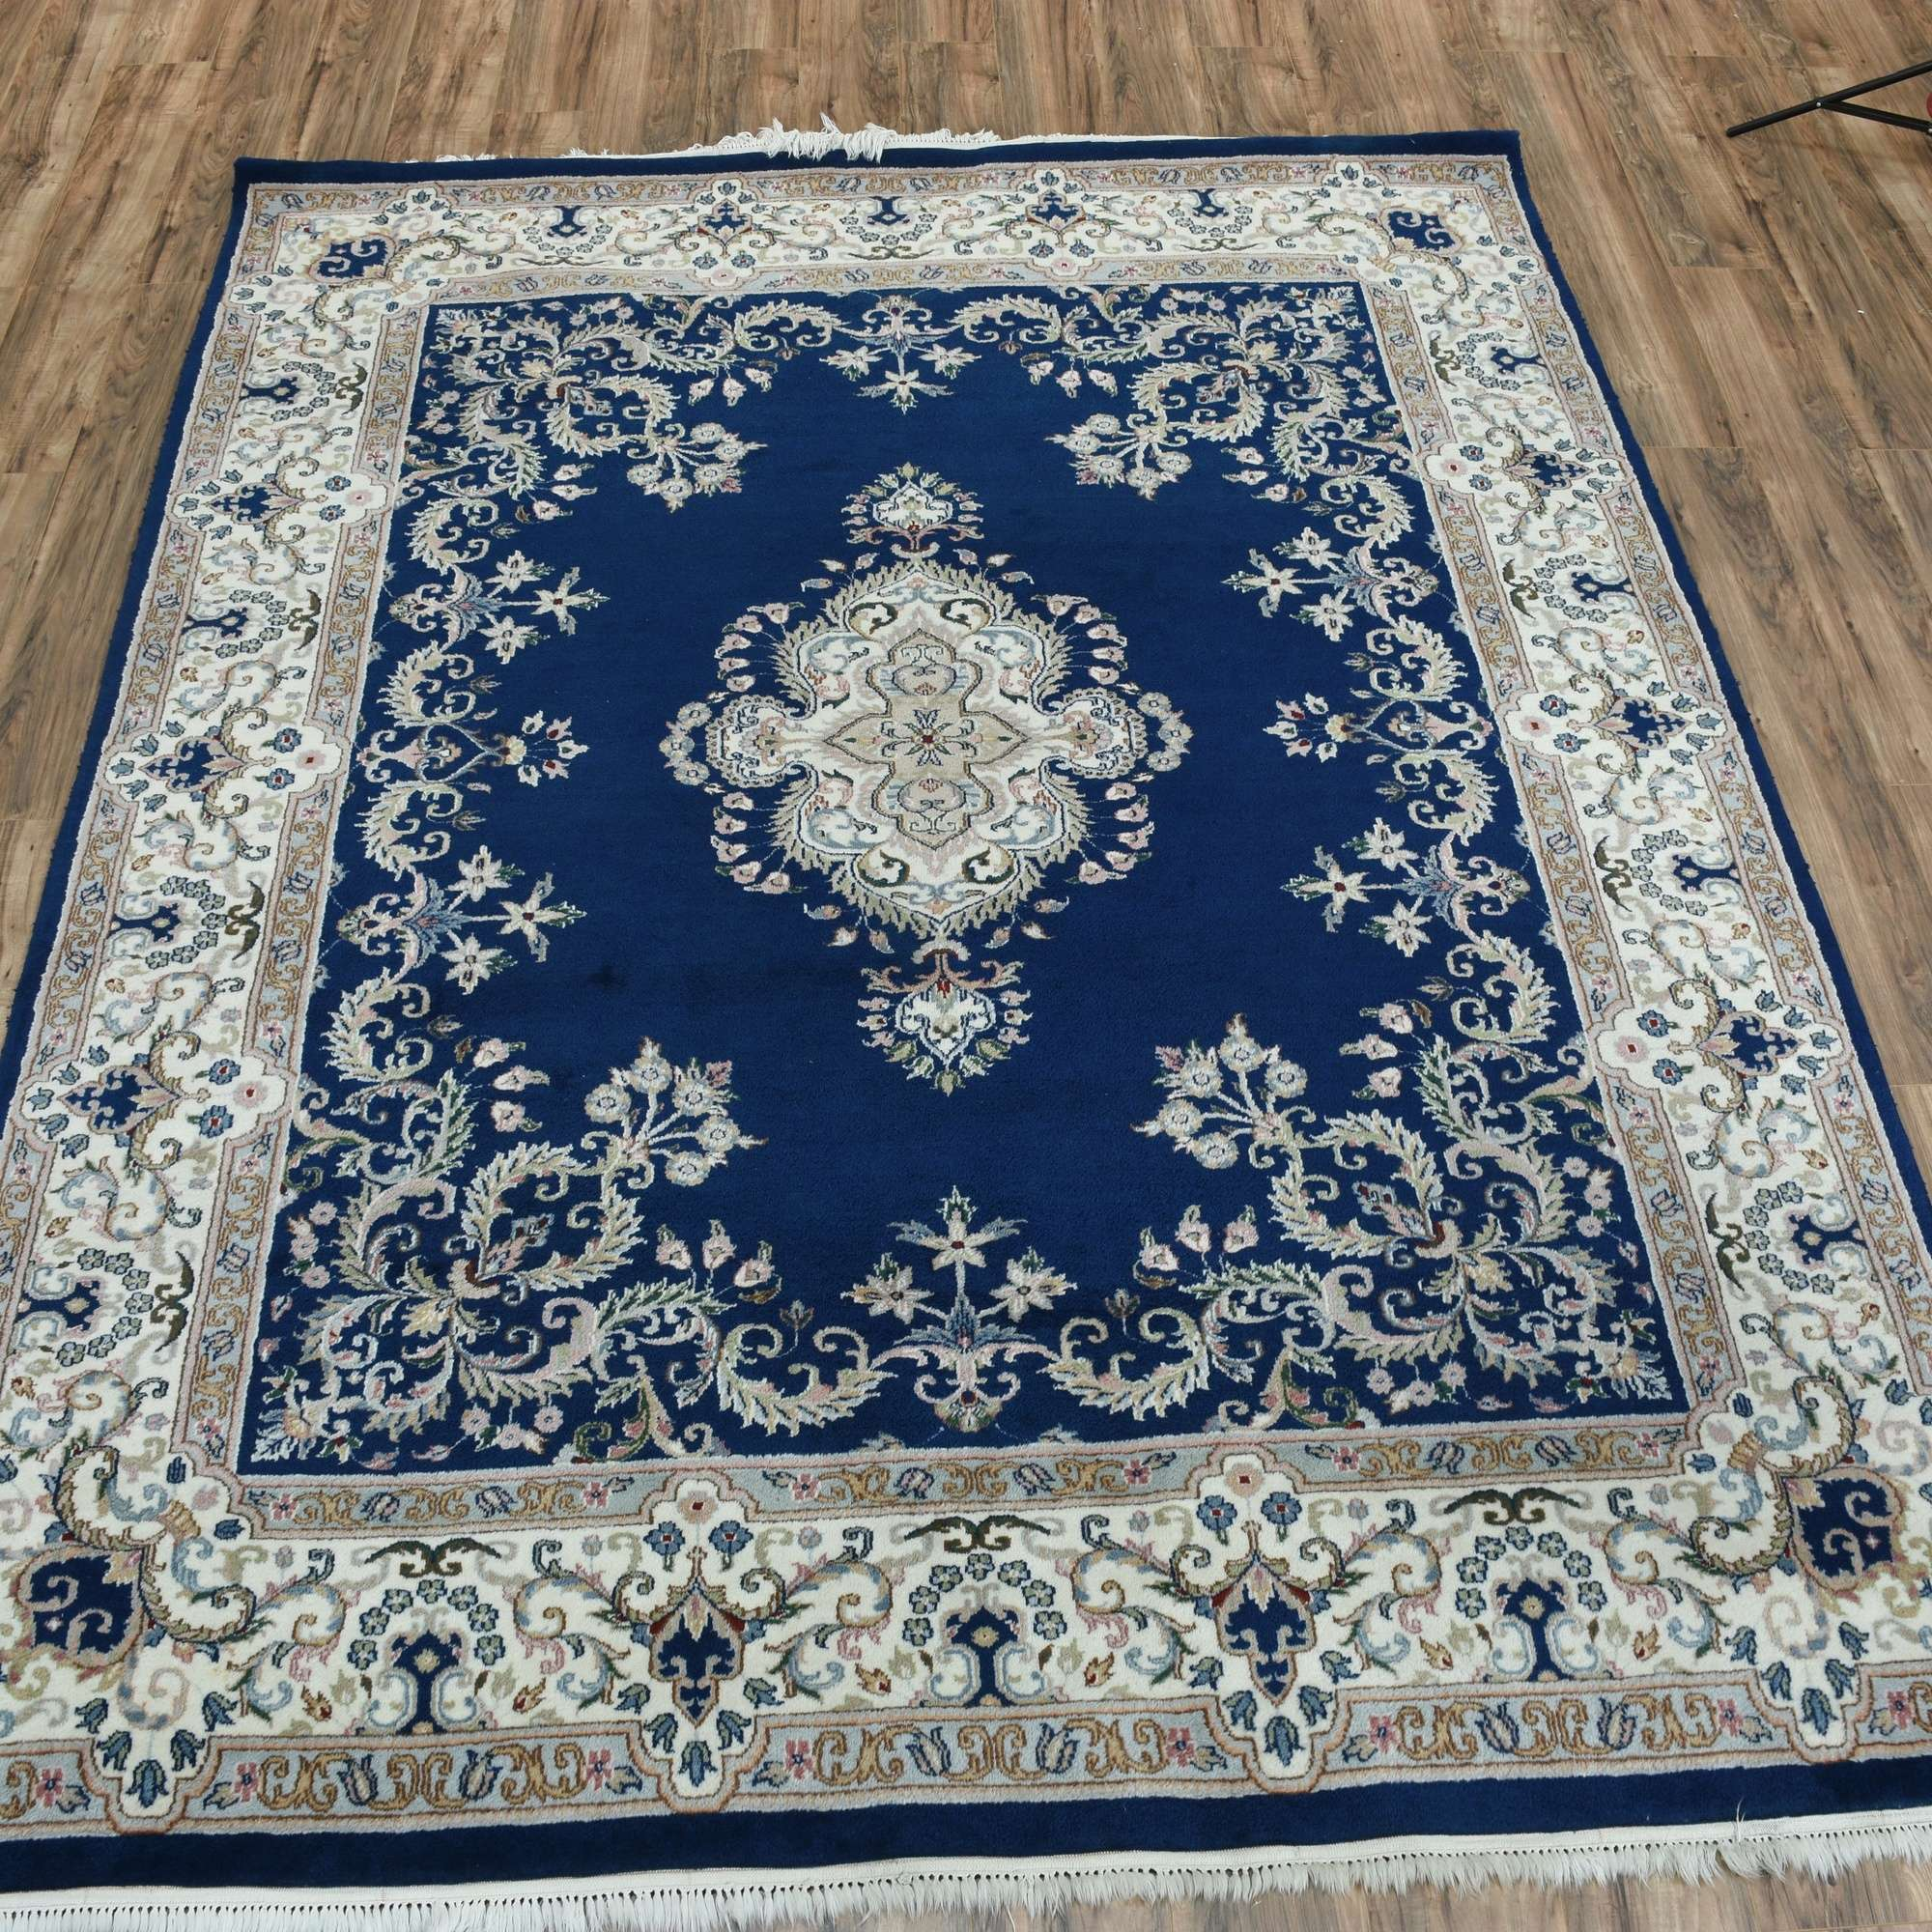 Navy Blue 8x10 Area Rug W Floral Pattern Loveseat Online Auctions San Diego